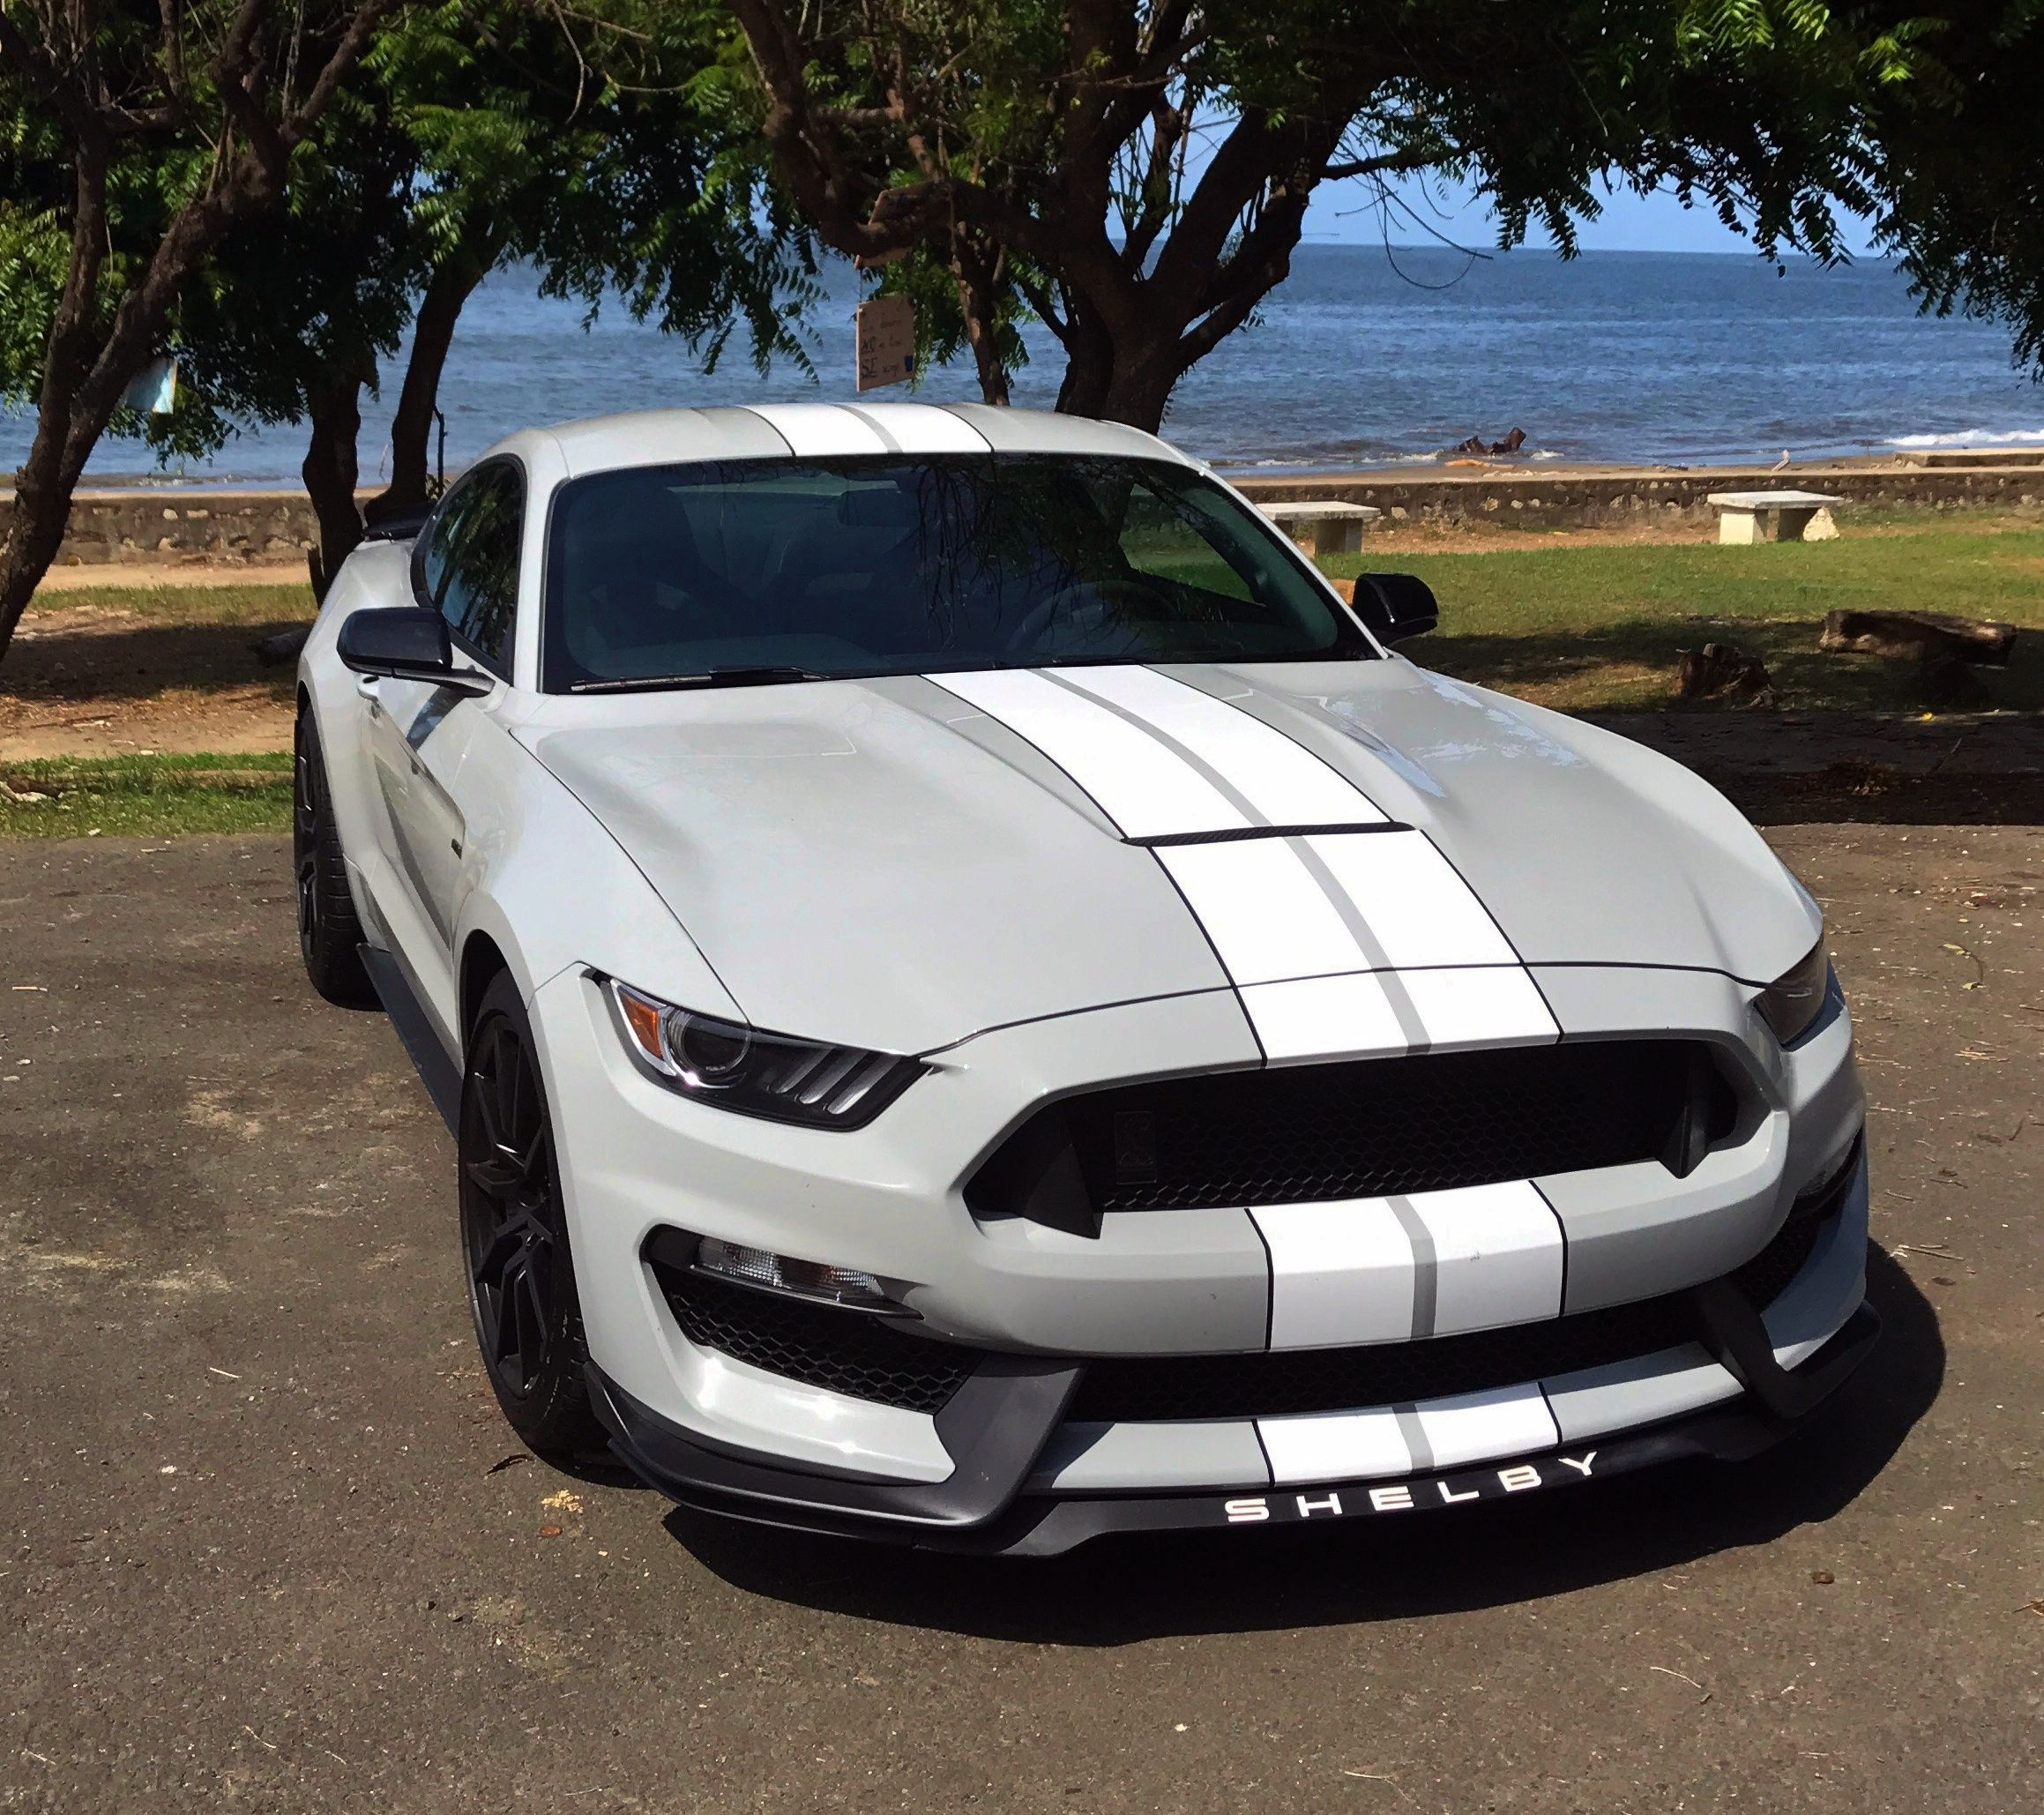 Shelby gt350 avalanche gray 2017 dream cars shelby gt c10 chevy